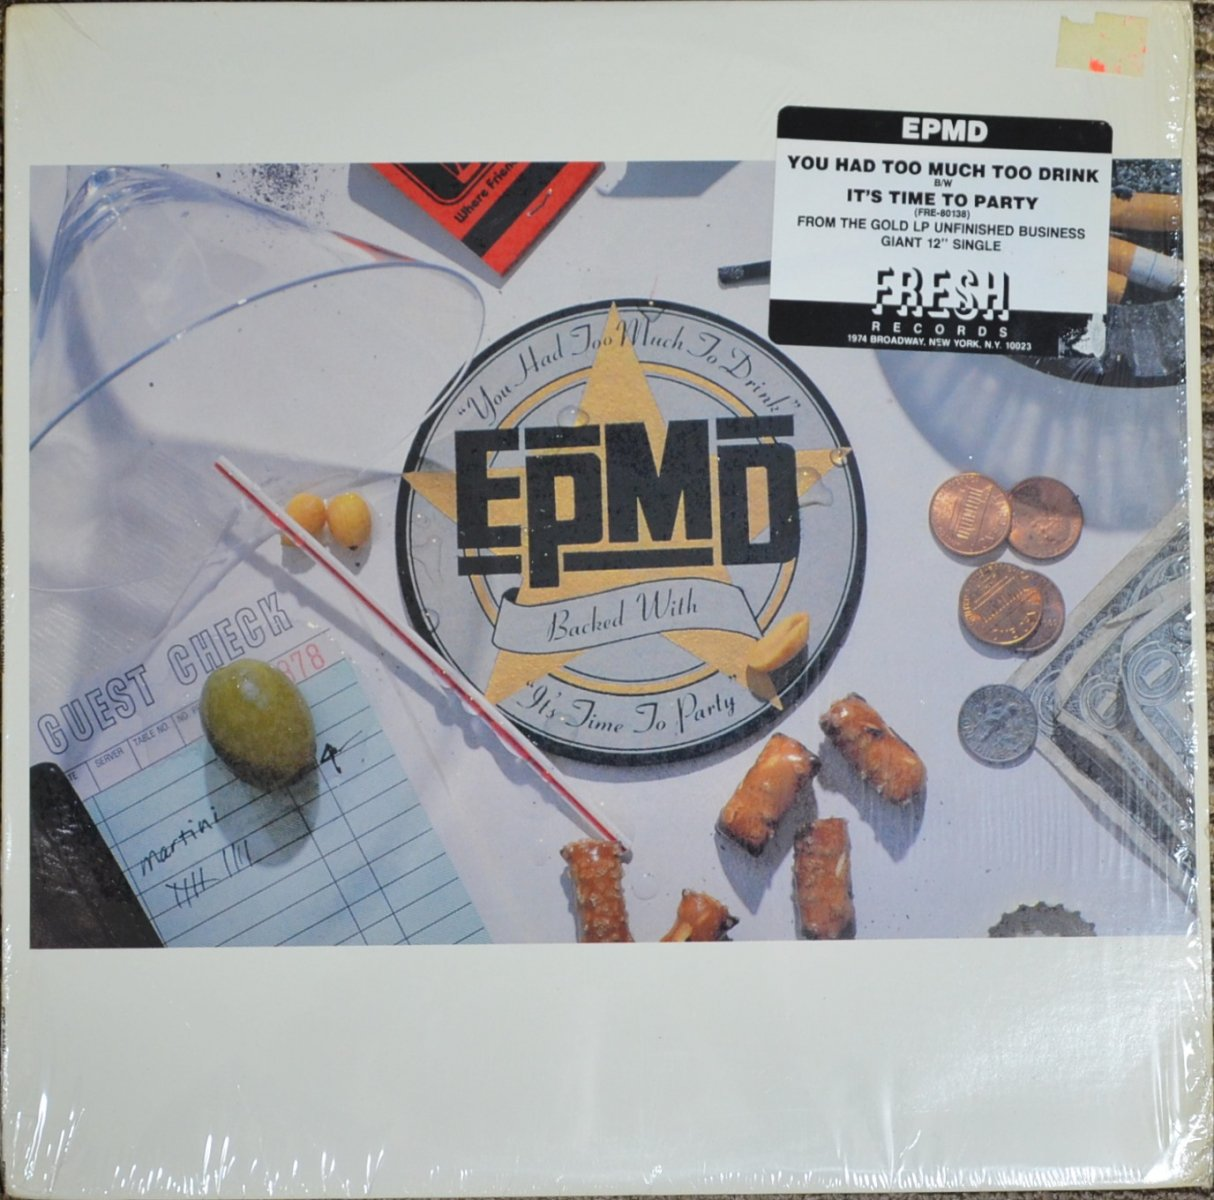 EPMD ‎/ YOU HAD TOO MUCH TO DRINK / IT'S TIME TO PARTY (12